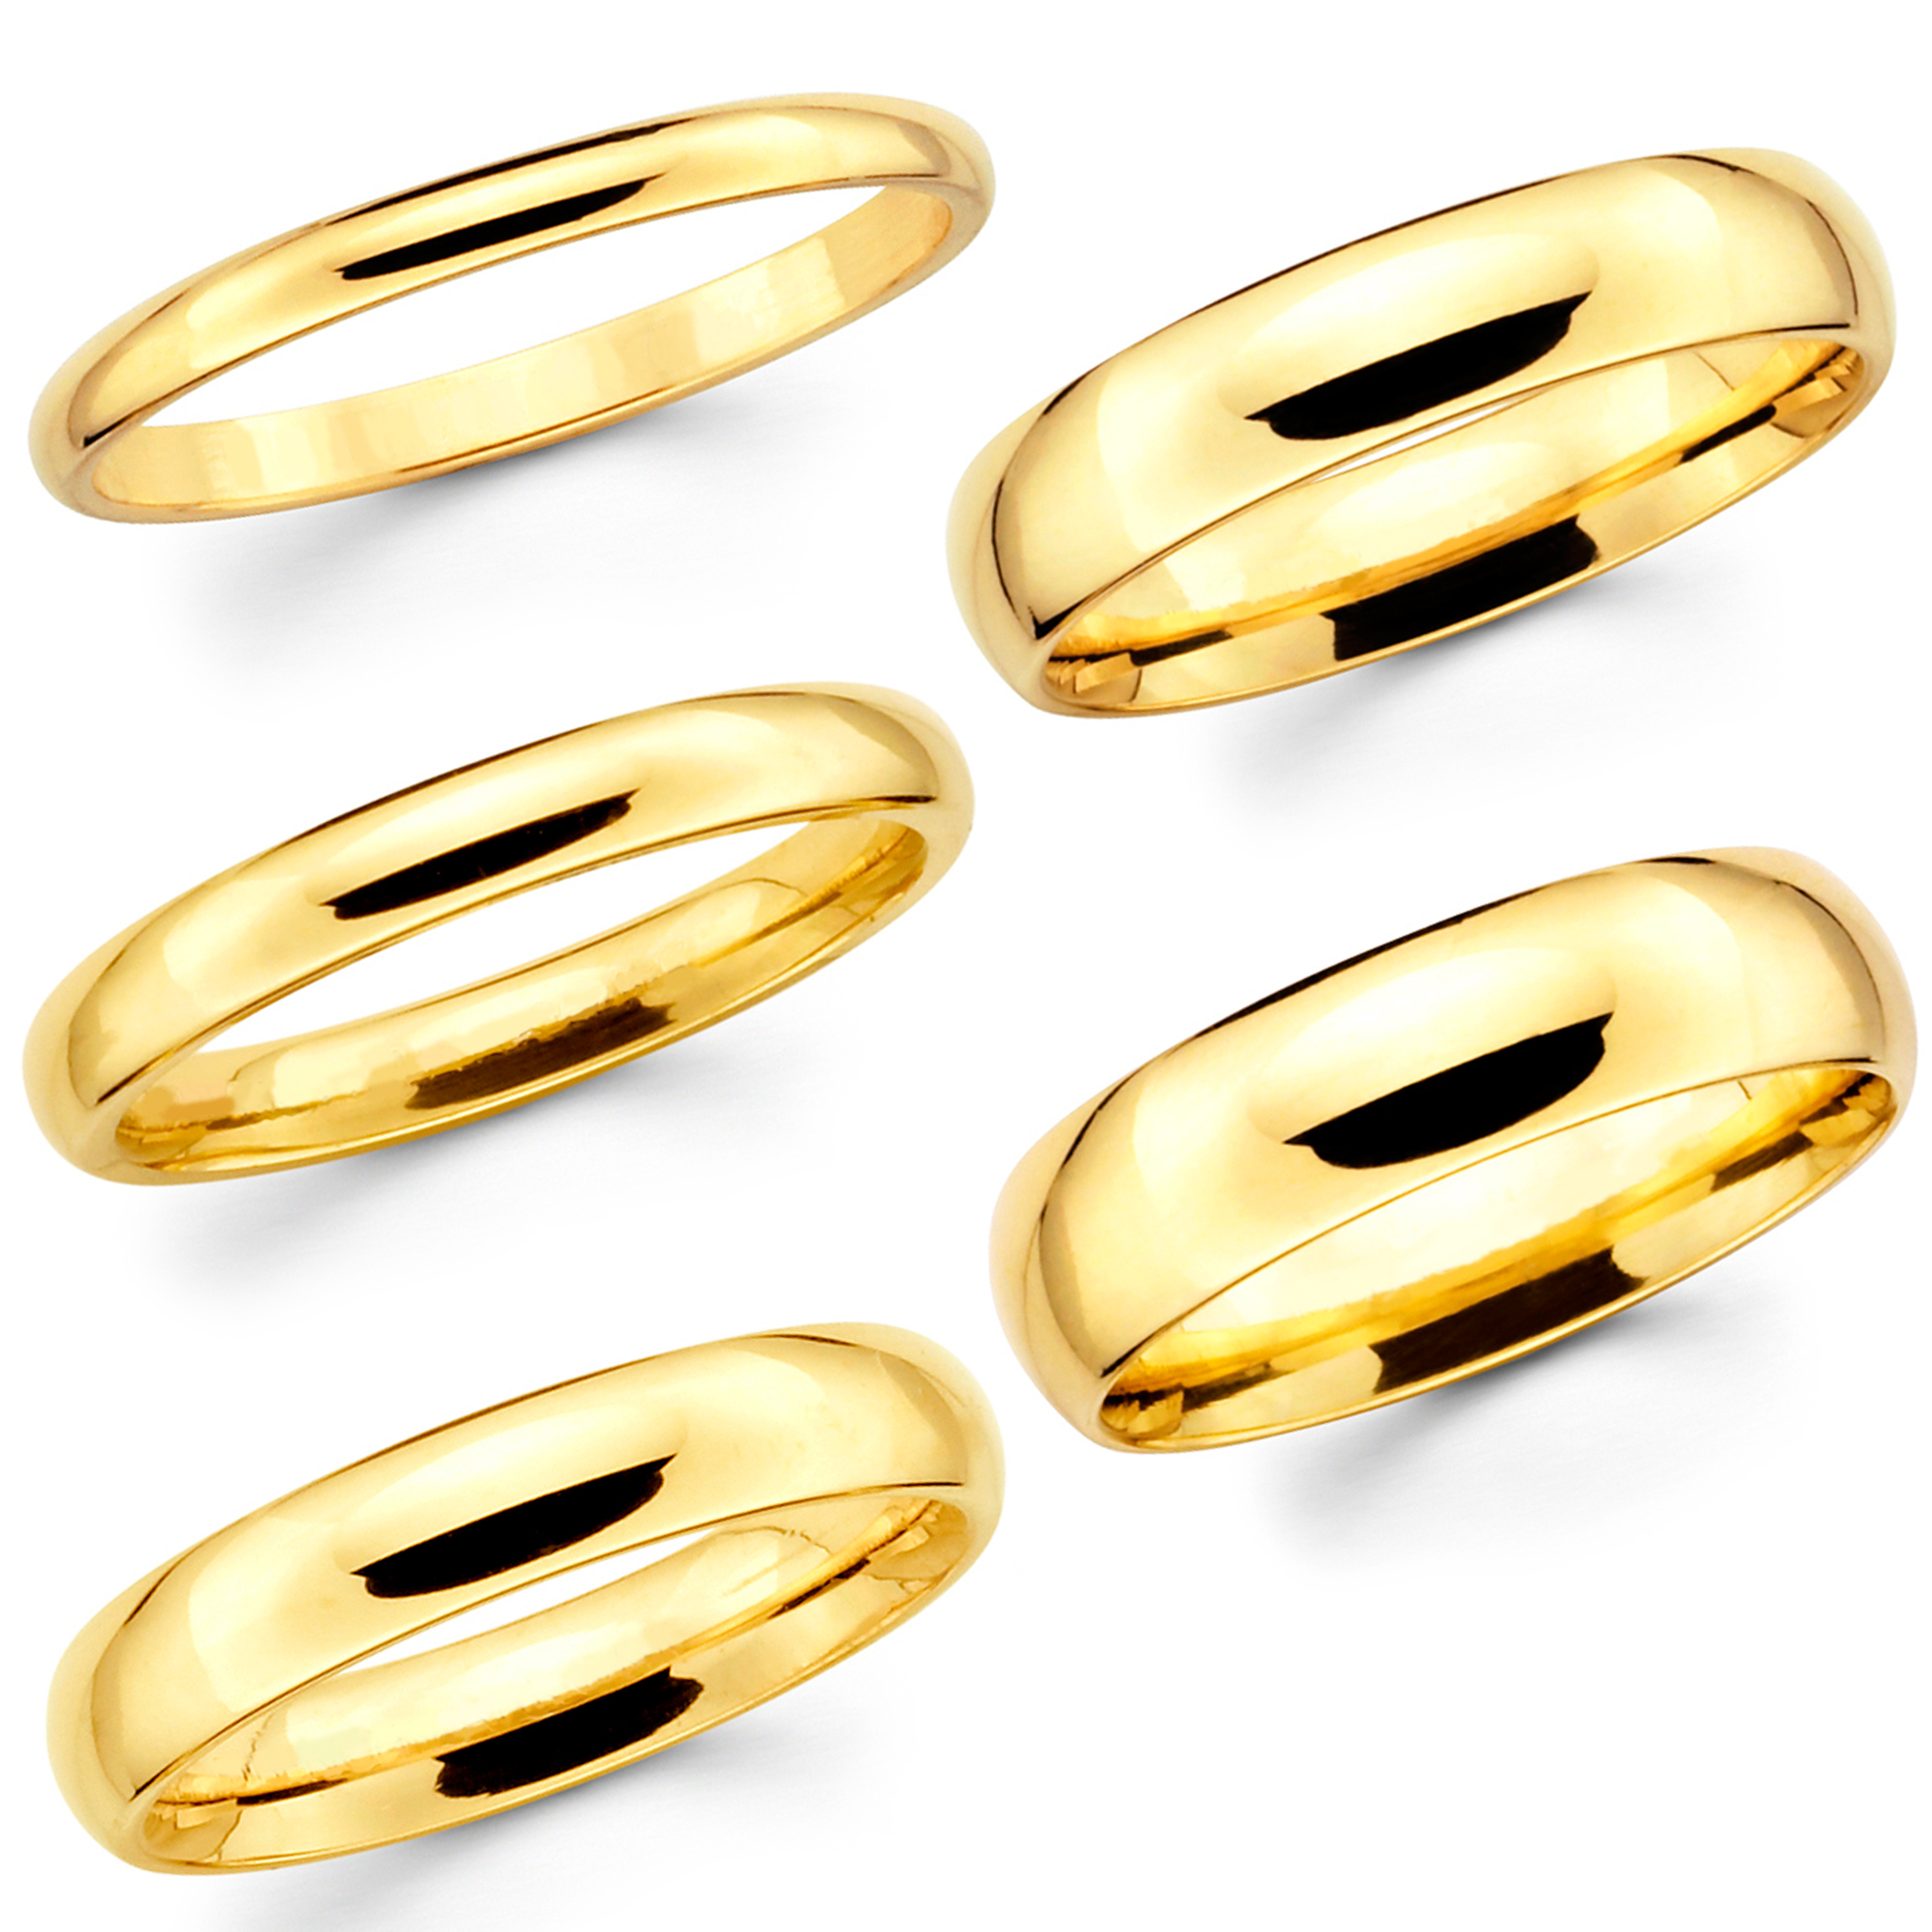 wide plain ring fiorelli uk online rings p asp geometric gold c shopping